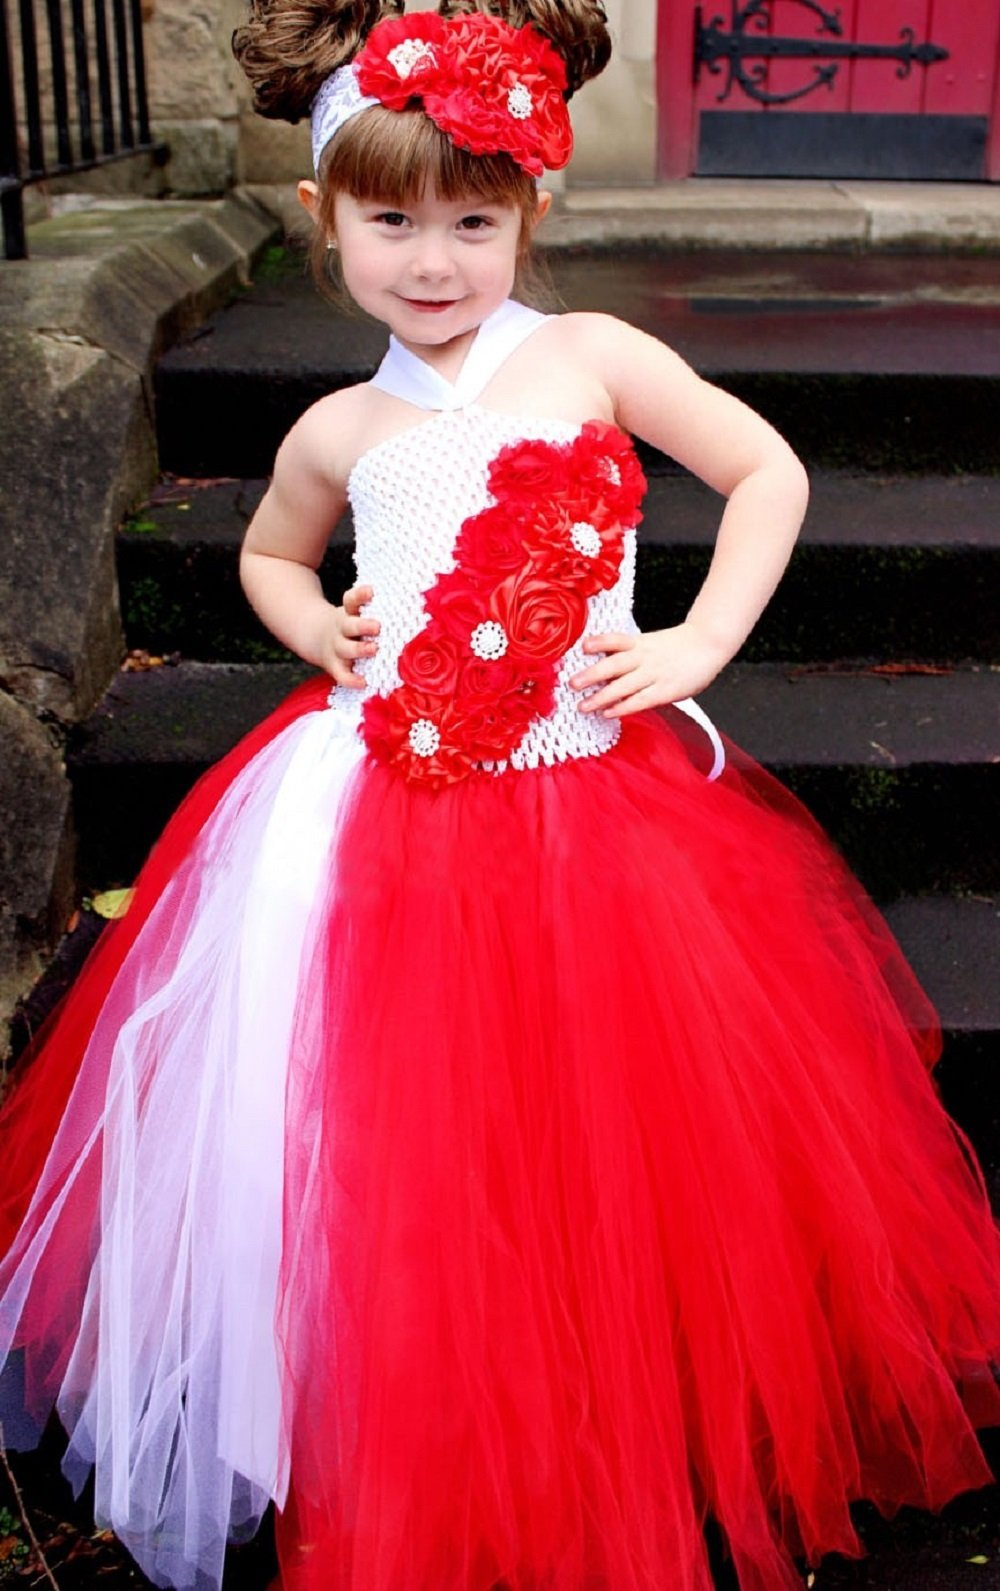 22c97b928 Red & White Flower Girl Wedding Tutu Dress Birthday Party Pageants ...